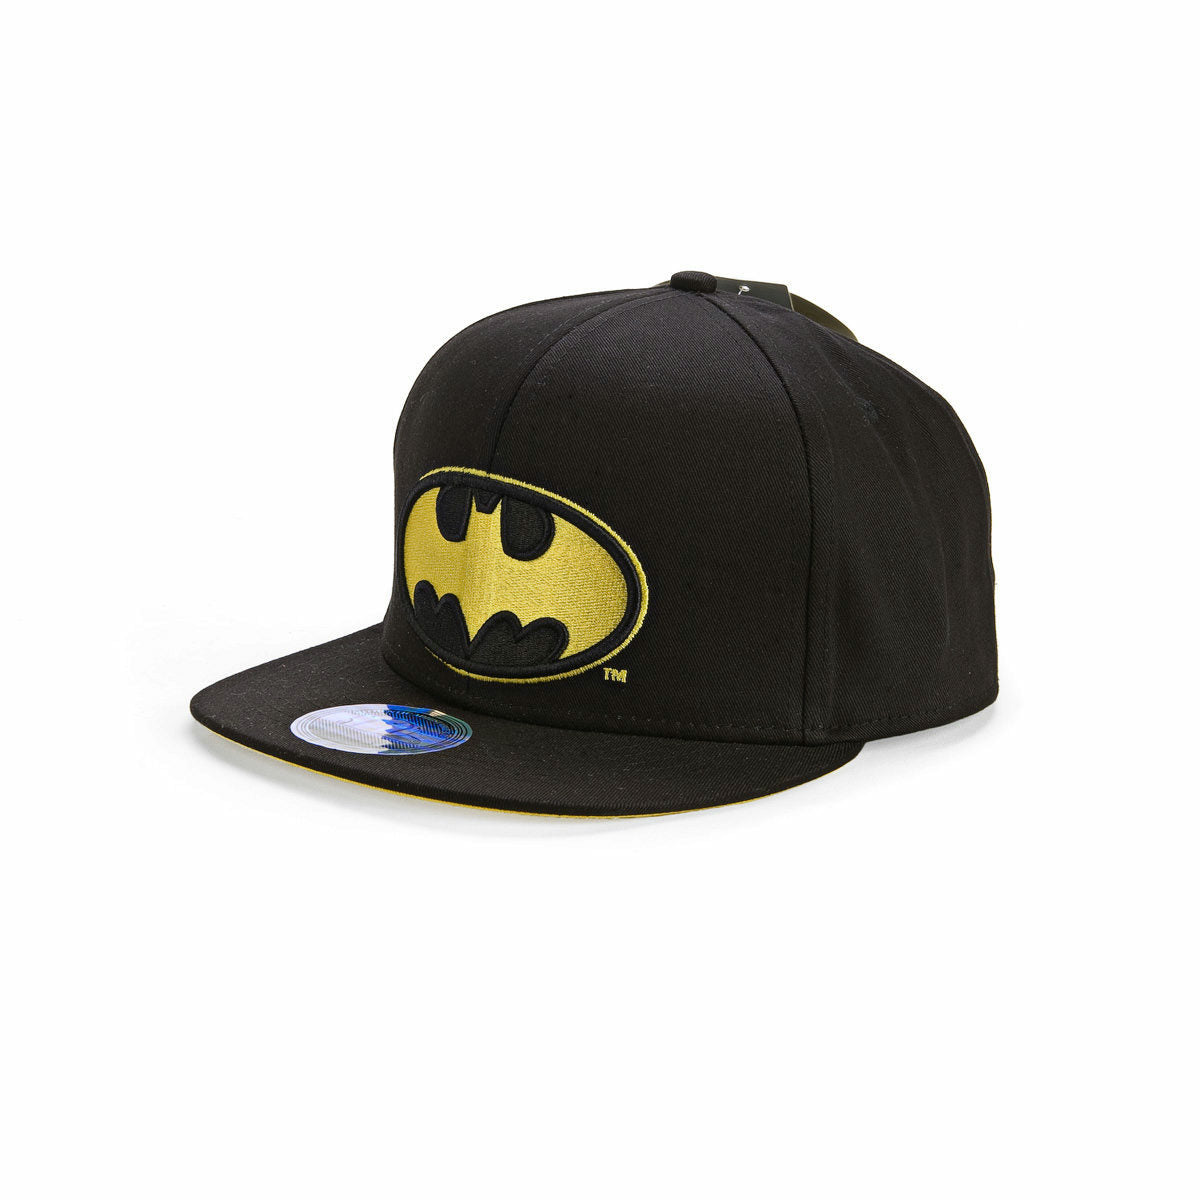 Batman Bat Signal Logo DC Comics Embossed Black Flat Bill Adjustable Hat Cap